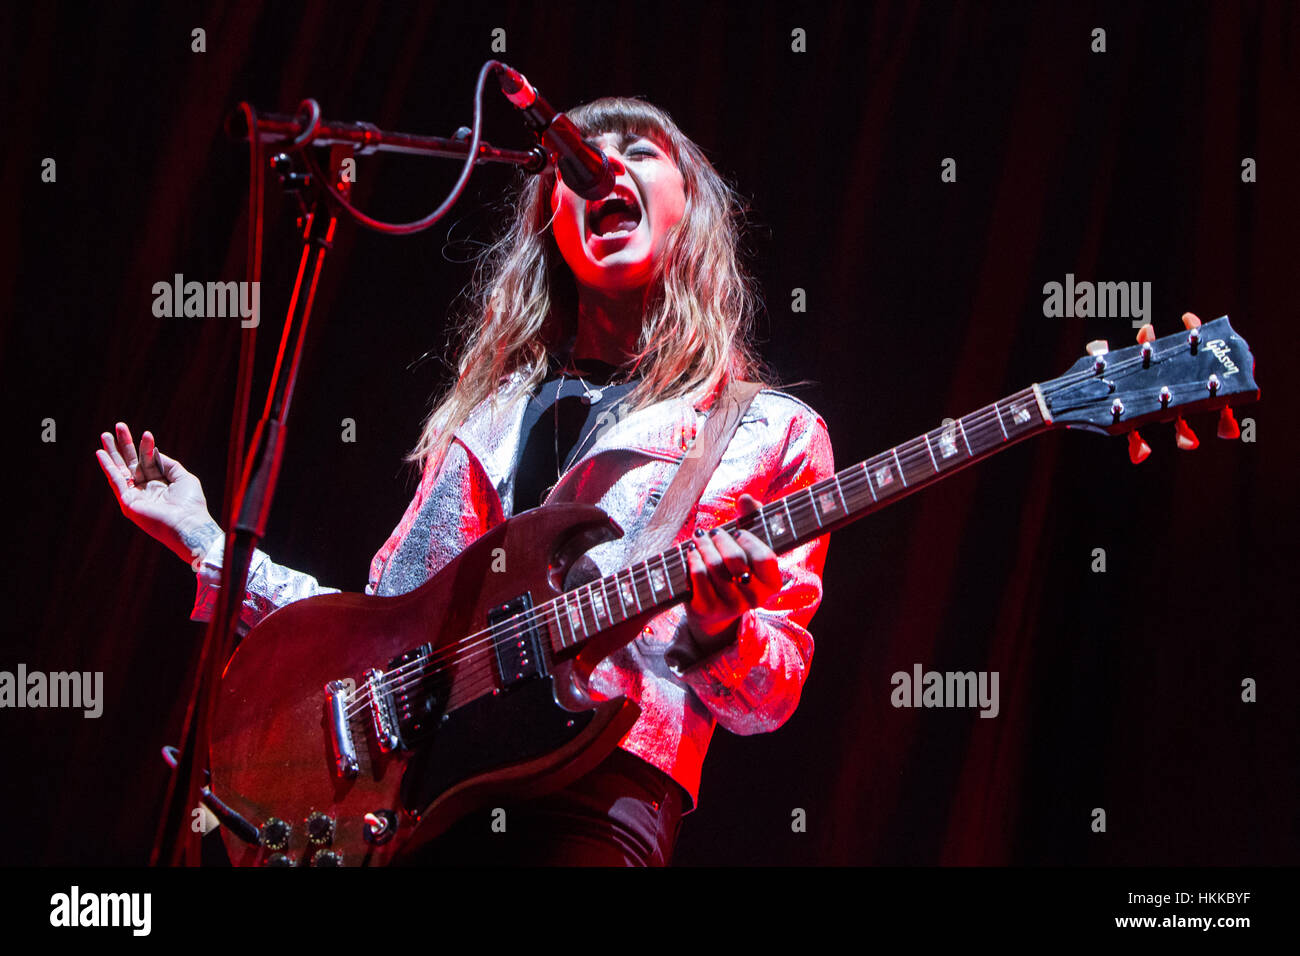 Milan Italy. 28th January 2017. The English heavy blues duo The Pearl Harts performs live on stage at Mediolanum - Stock Image